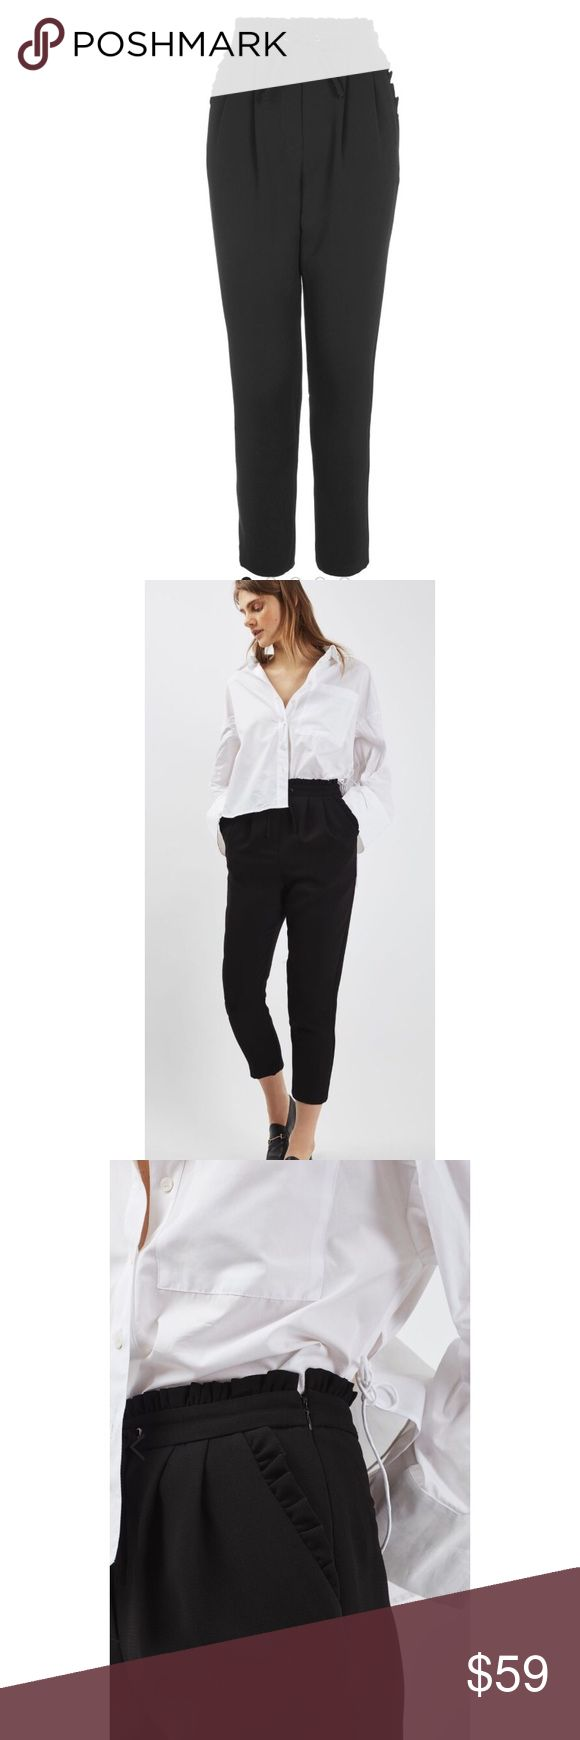 "{Topshop} Frill Waist Peg Leg Pants Sporty, girly and superchic, these pleated and tapered trousers with ruffle trim and a drawstring detail accentuate all your style phases. - 24.5"" inseam; 13"" leg opening; 13"" front rise - Hidden side-zip closure - Side slant pockets - Crop hem - 100% polyester.                                     Location: B1 Topshop Pants"